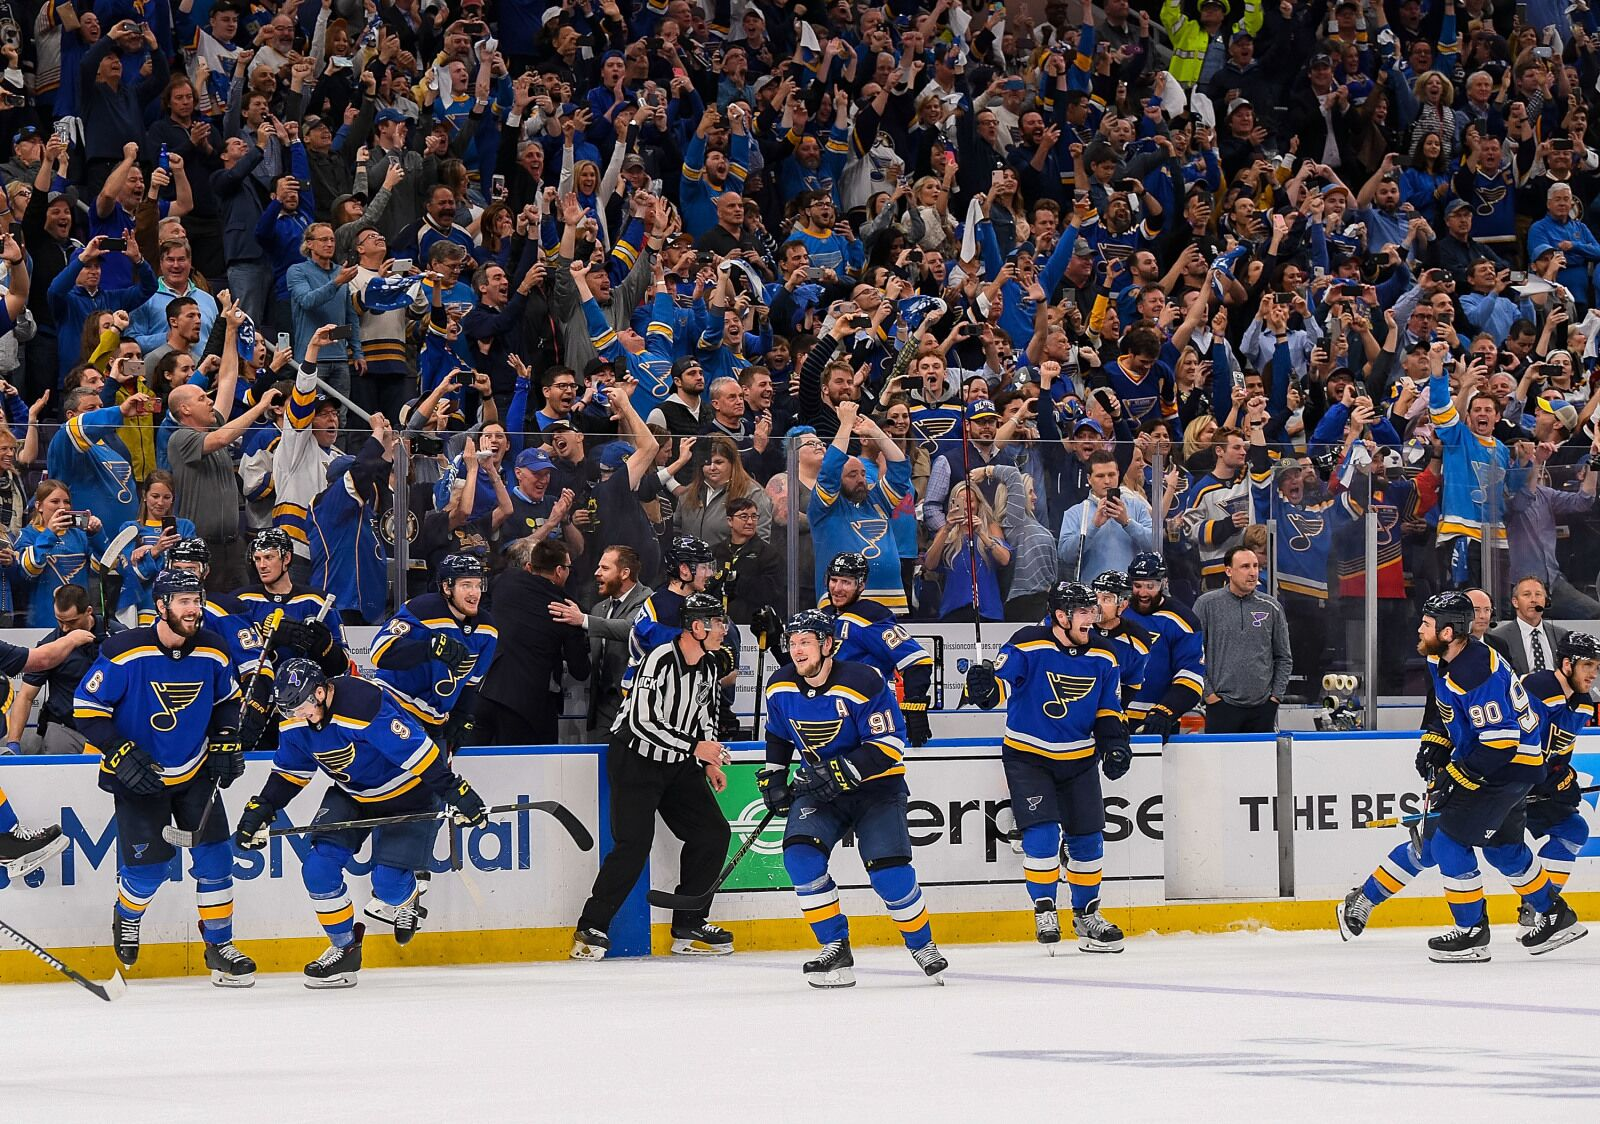 St. Louis Blues Making Enterprise Center Available To All (Sort Of)